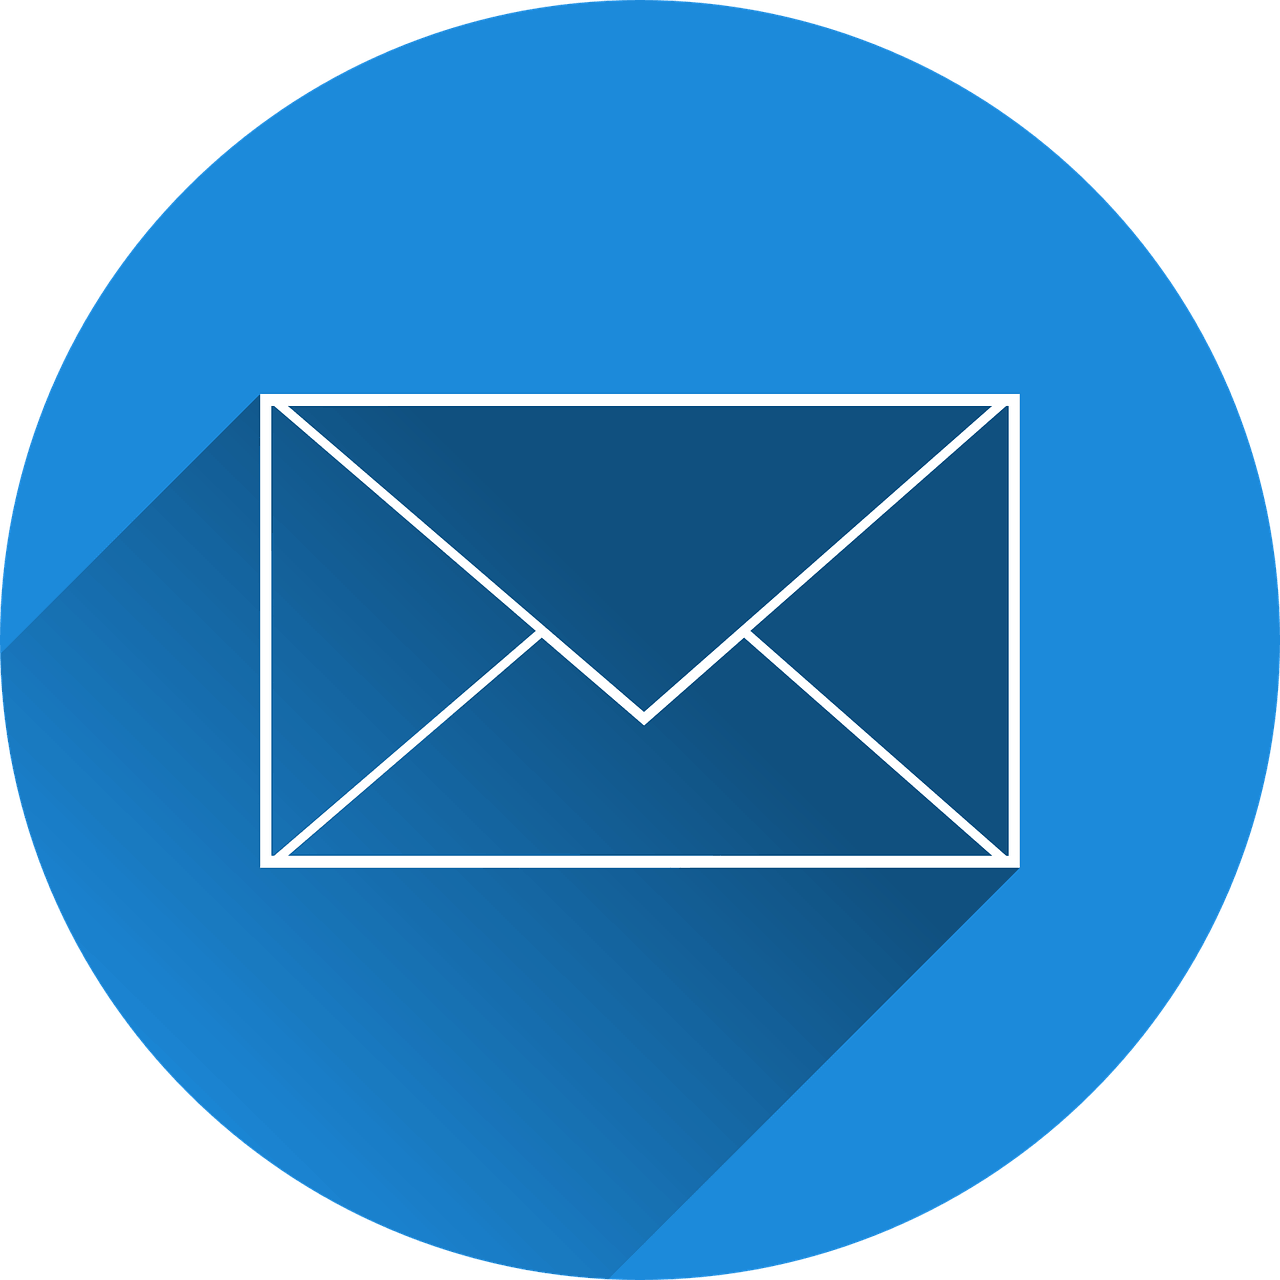 Circle with envelope icon